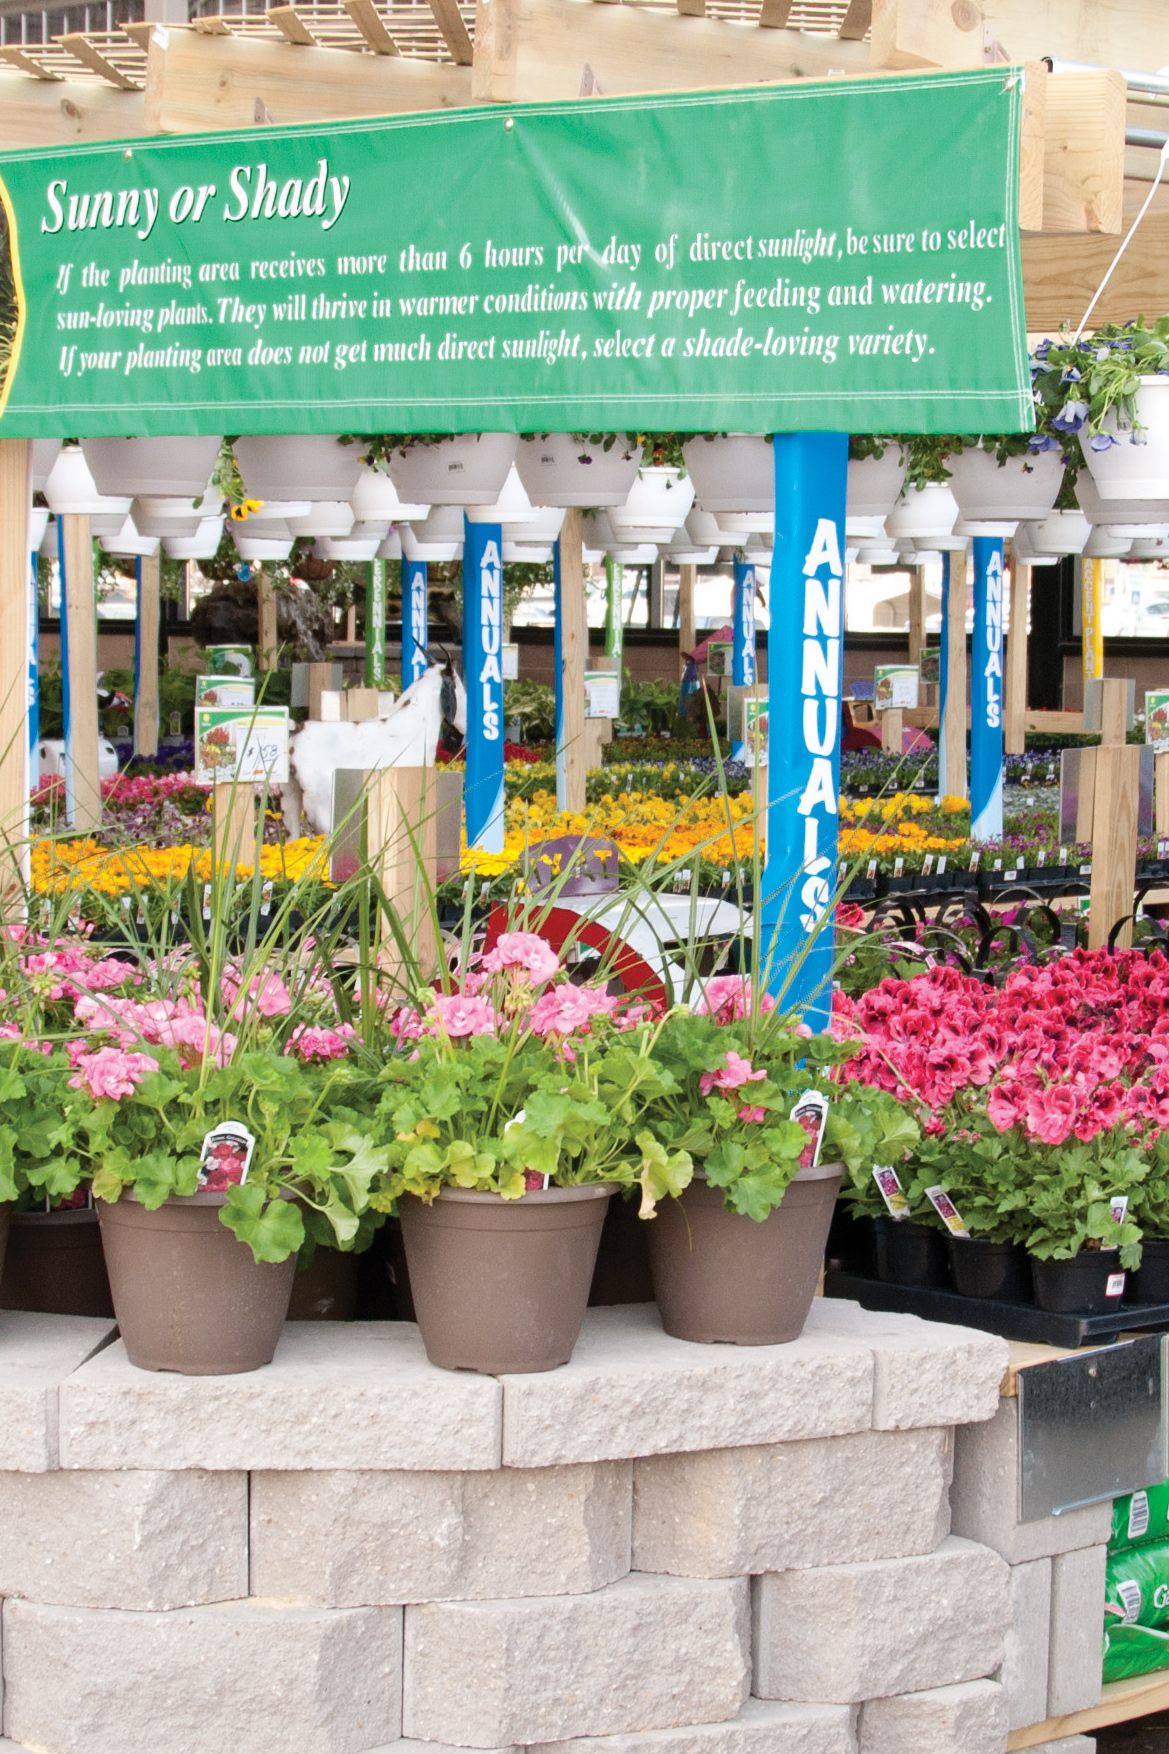 Get growing with Menards' Garden Center! From seed